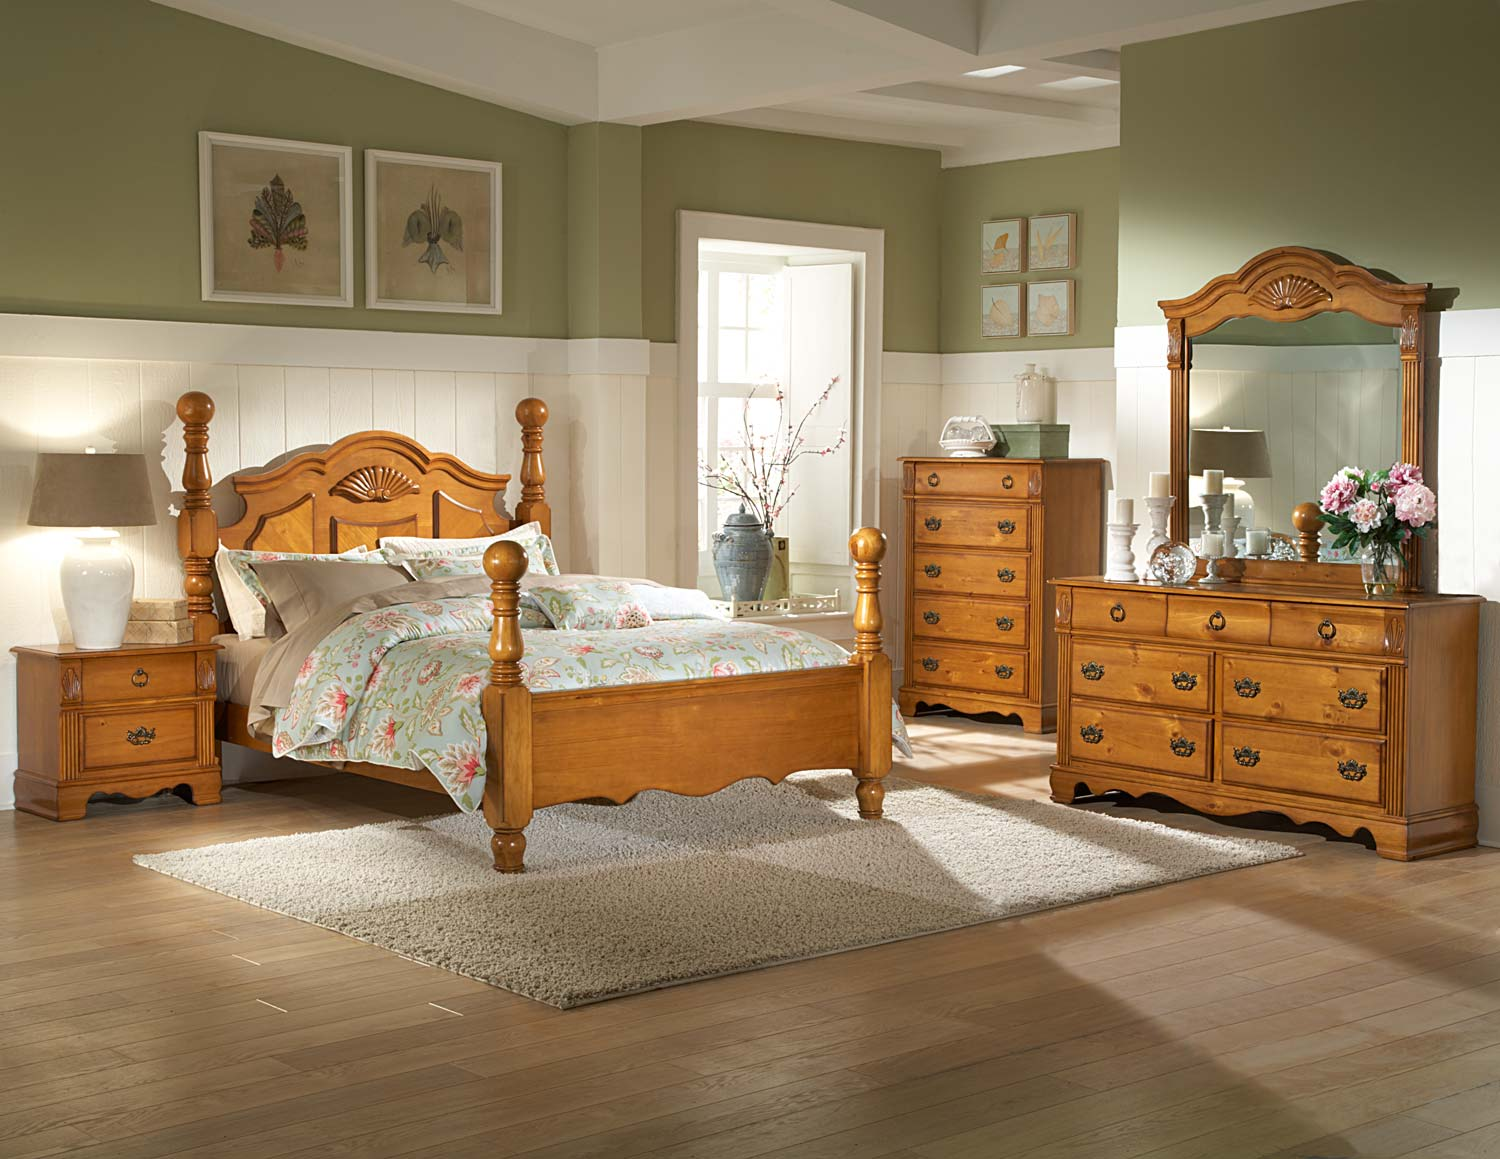 Homelegance archdale bedroom set pine b2139 bed set for Pine furniture